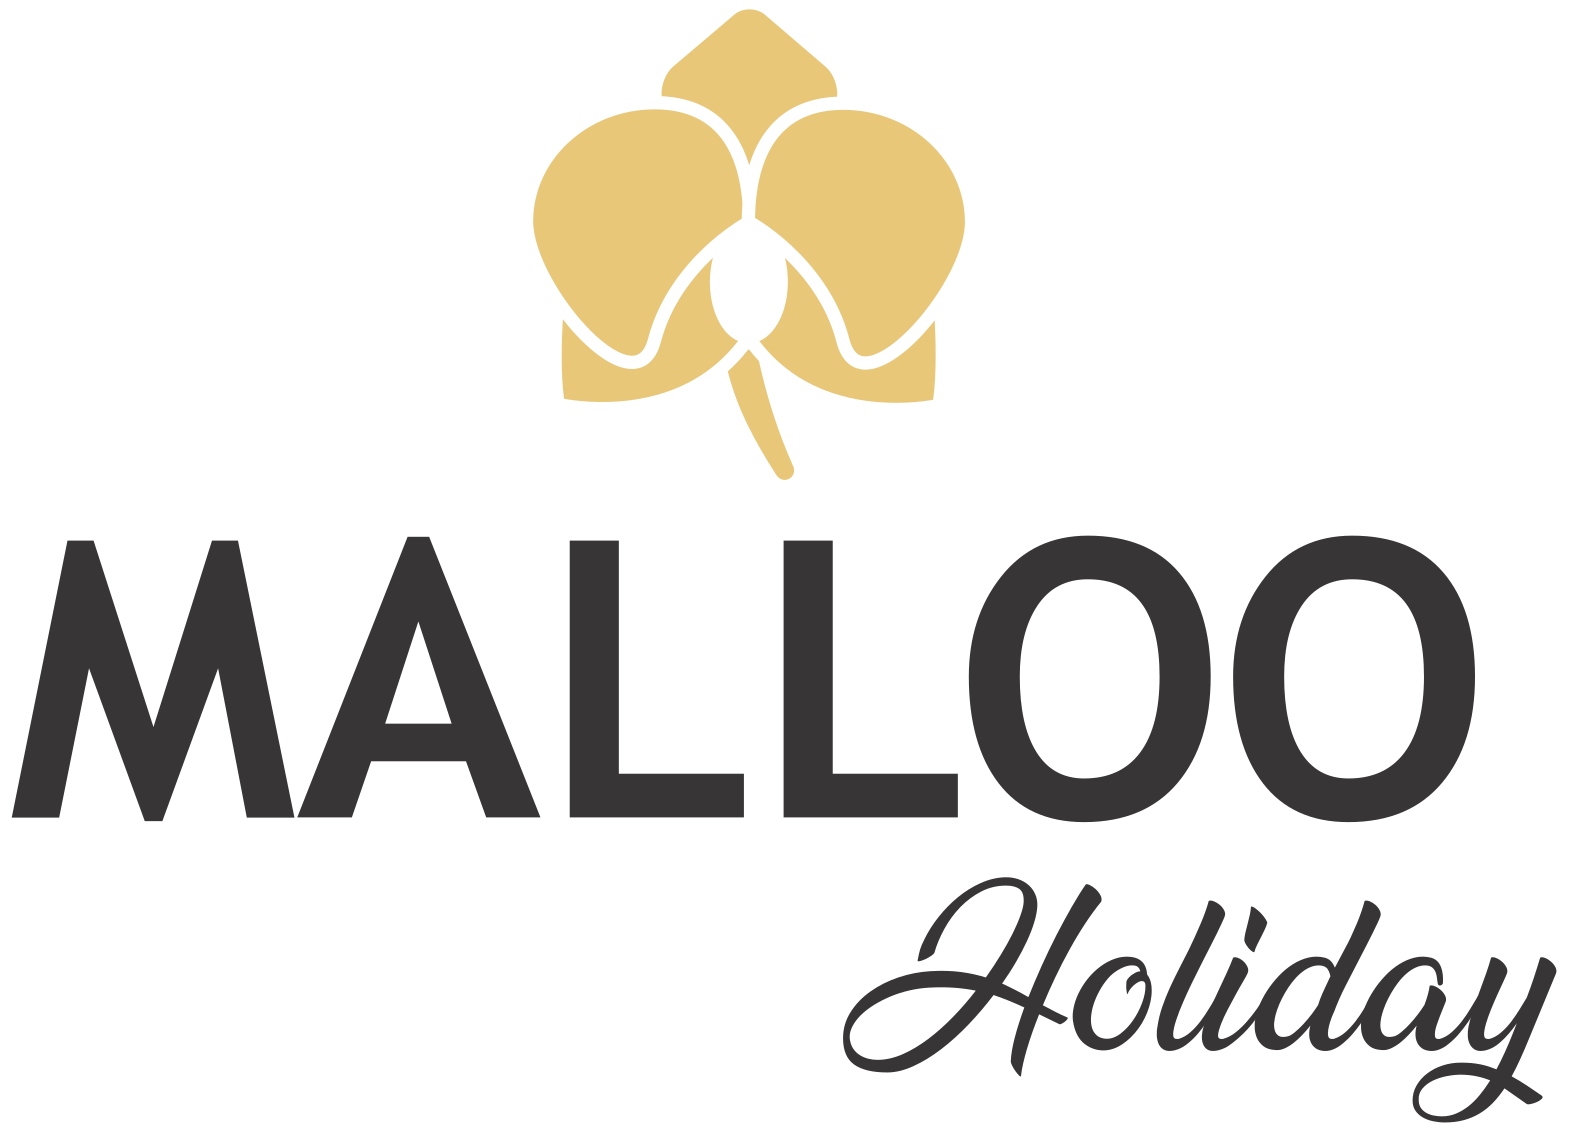 Malloo Holiday logo